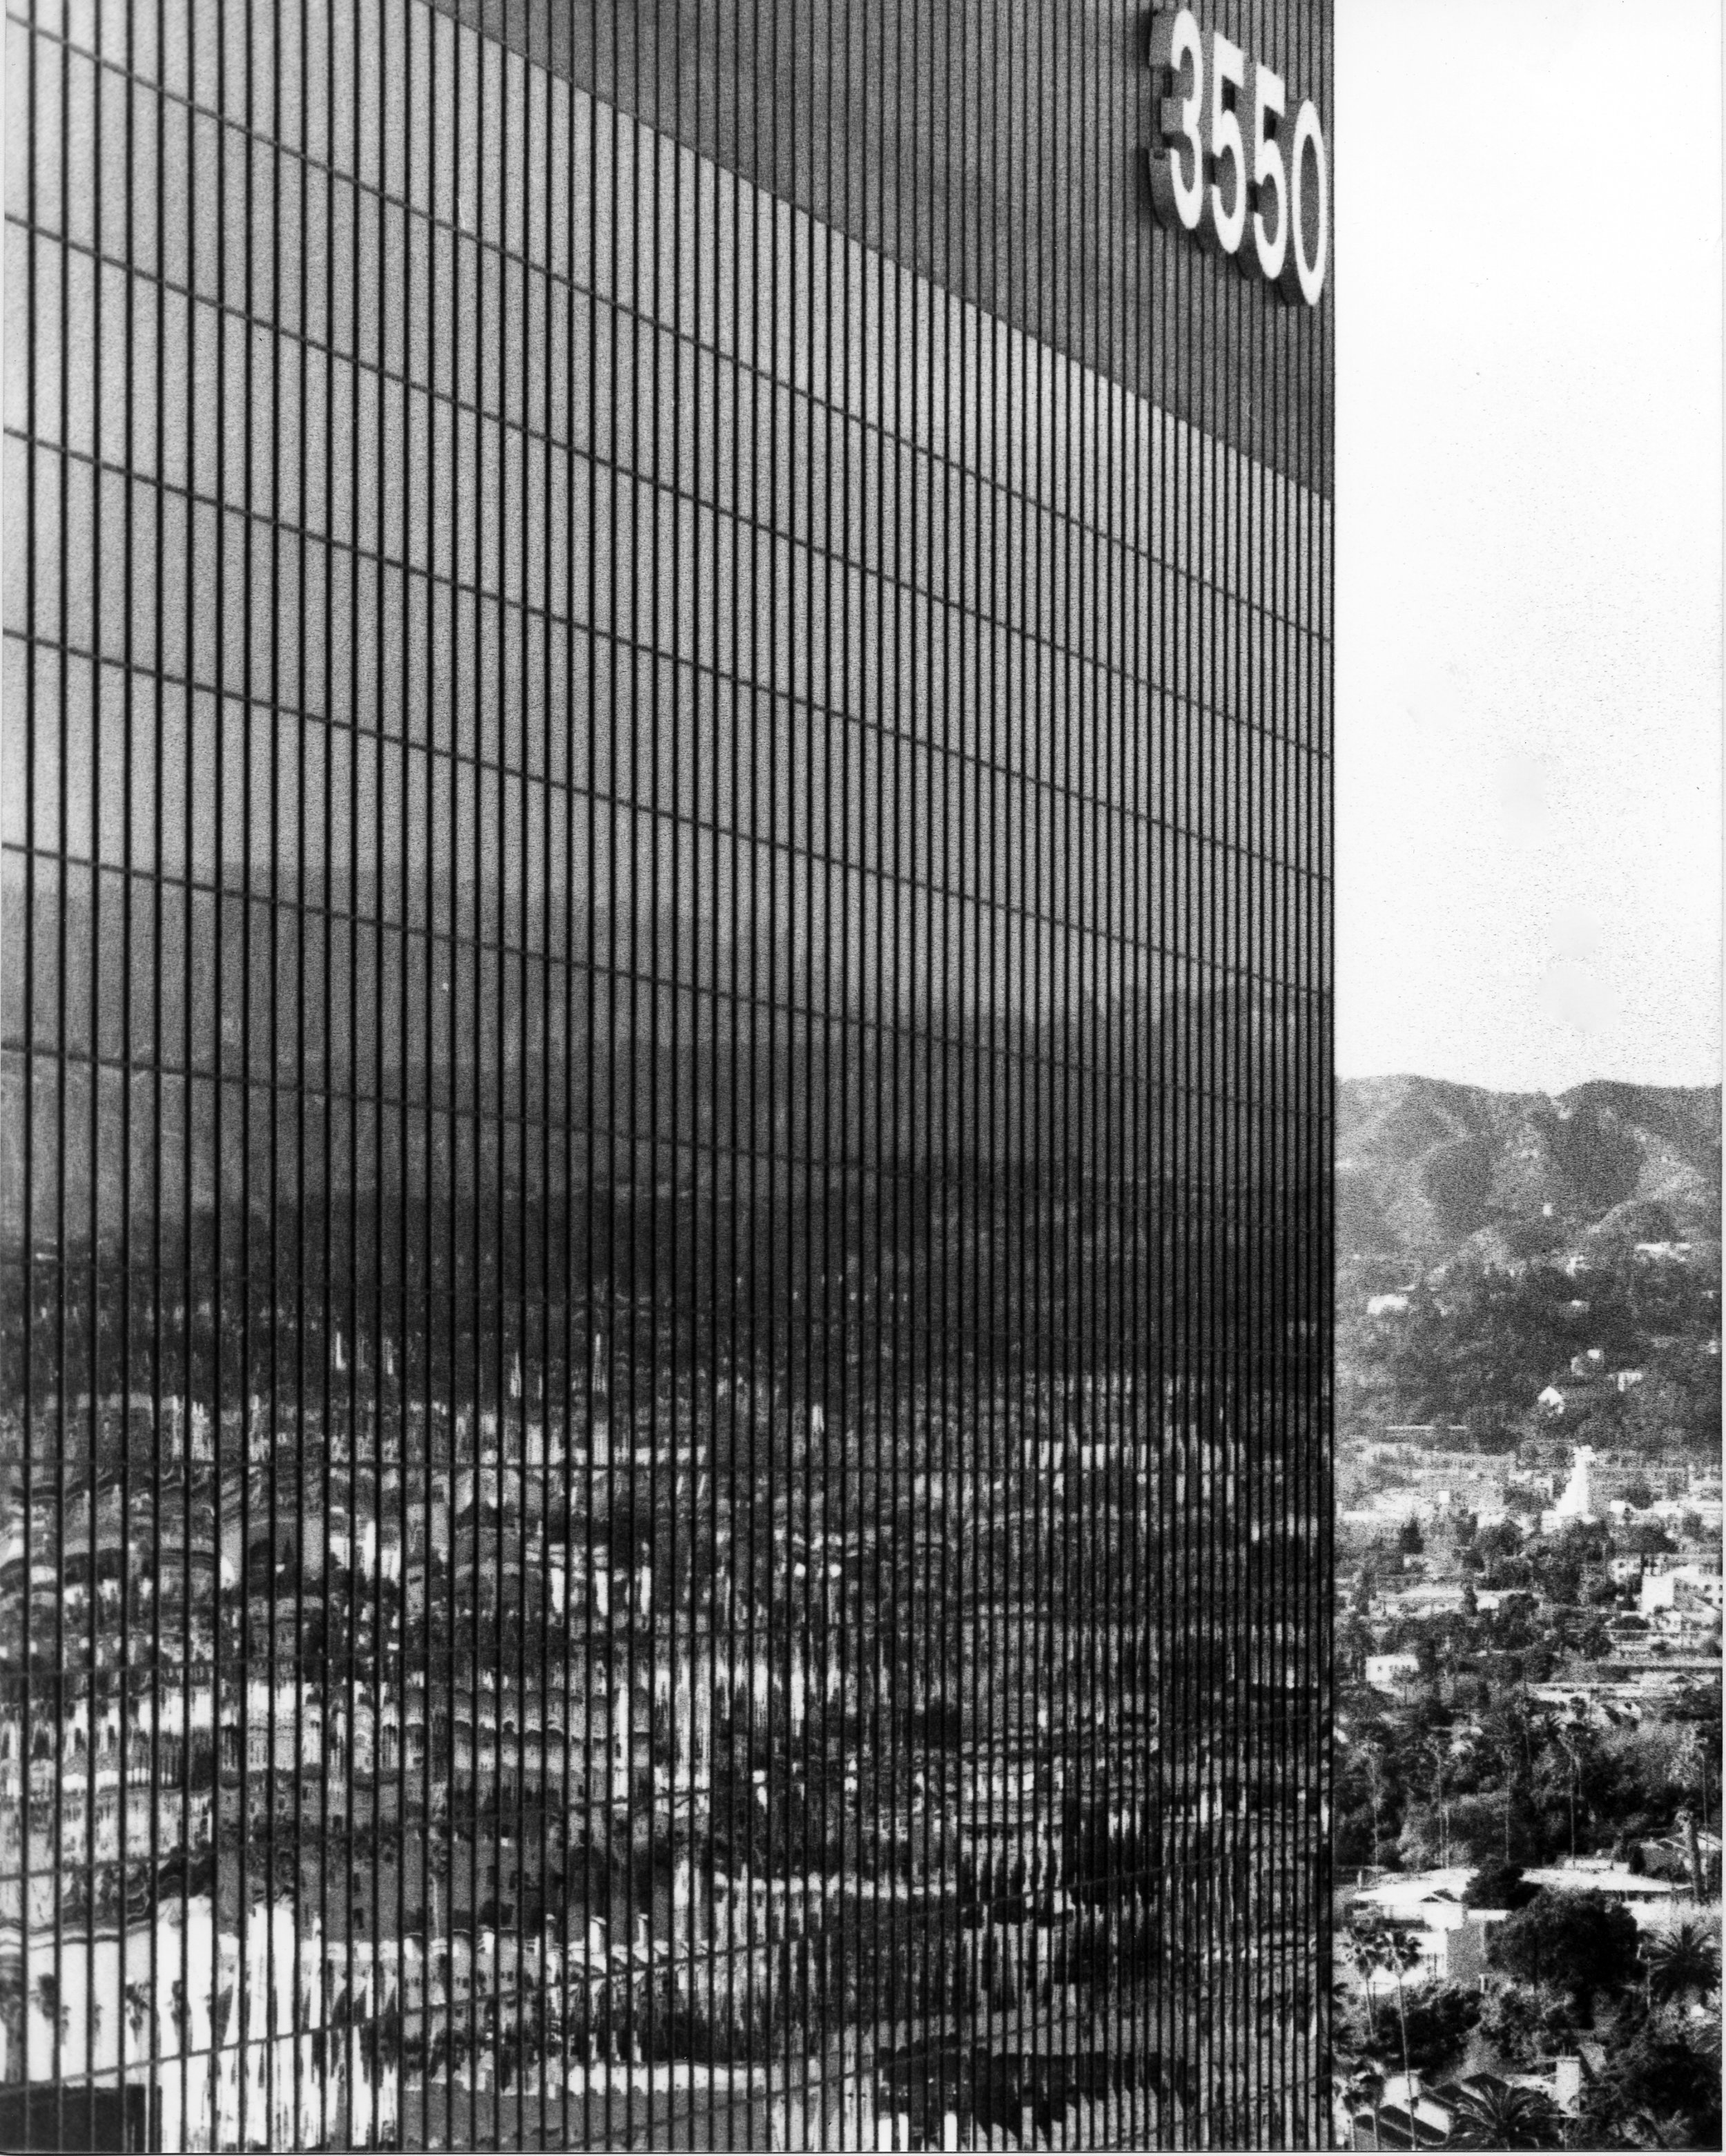 3550 Wilshire Blvd Original Scan with Levels.jpg